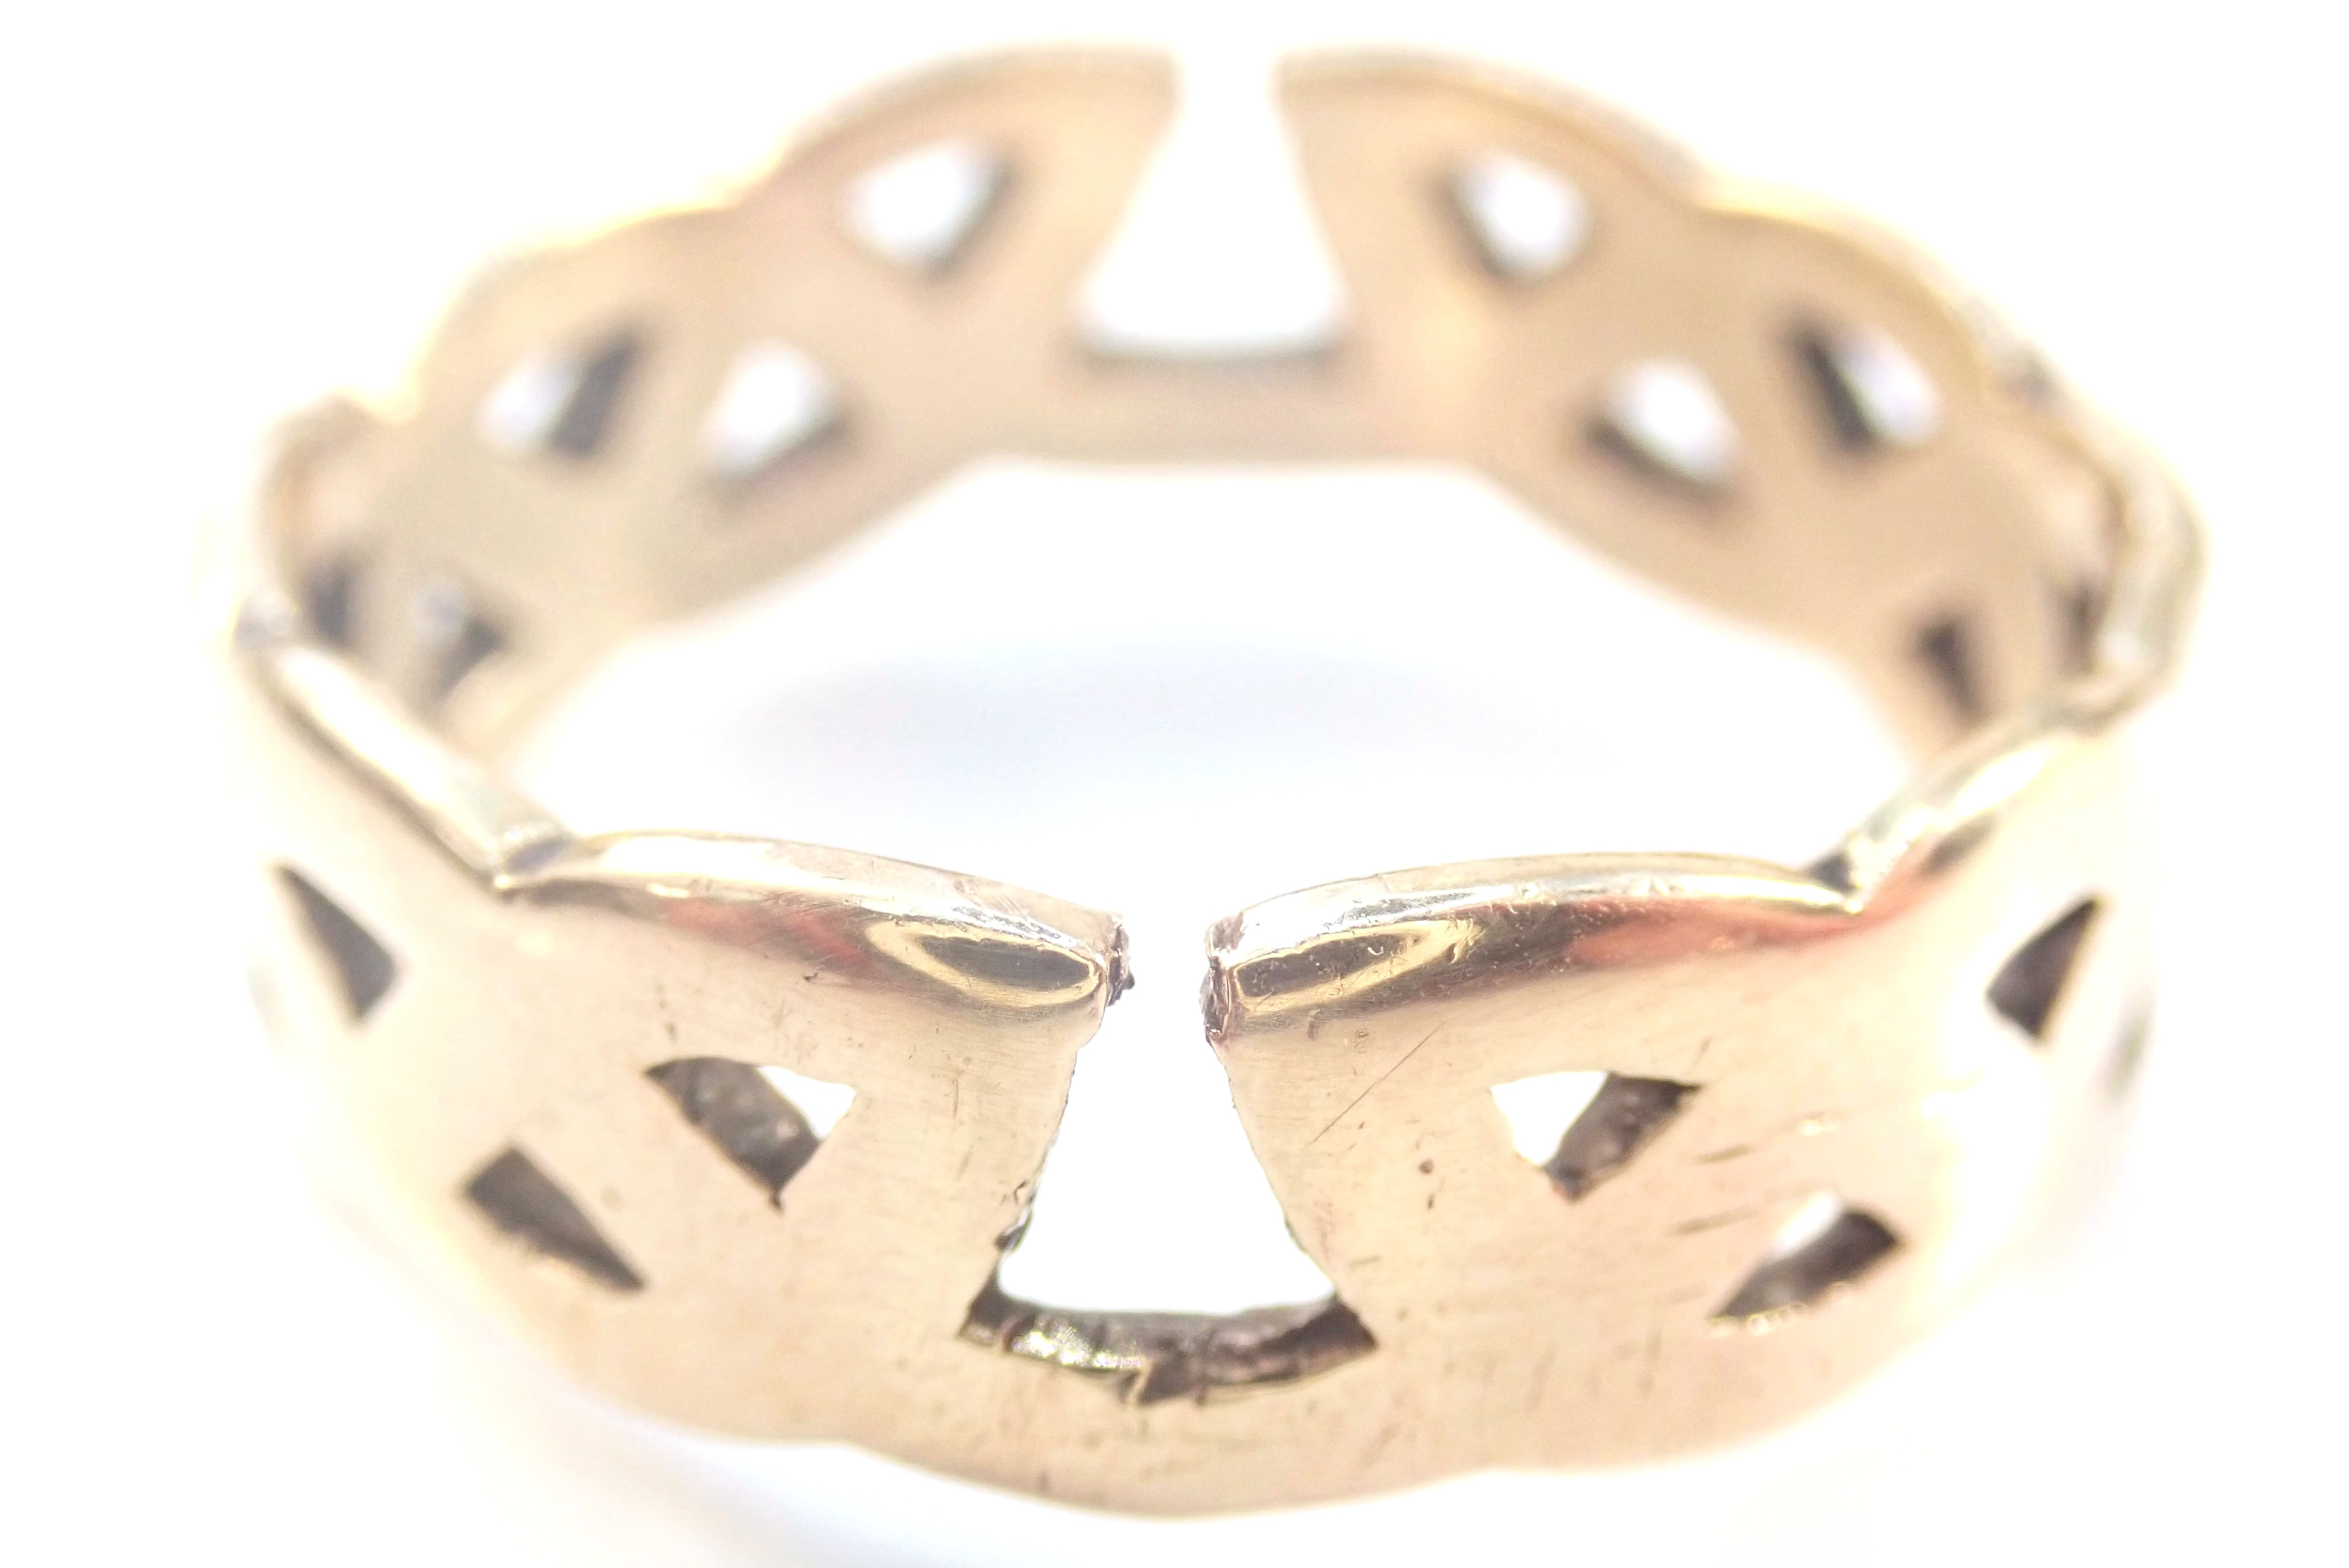 AZZ00931 - 9 carat Yellow Gold Celtic Band Signet Ring. Size T1/2 - 5.3gms #70